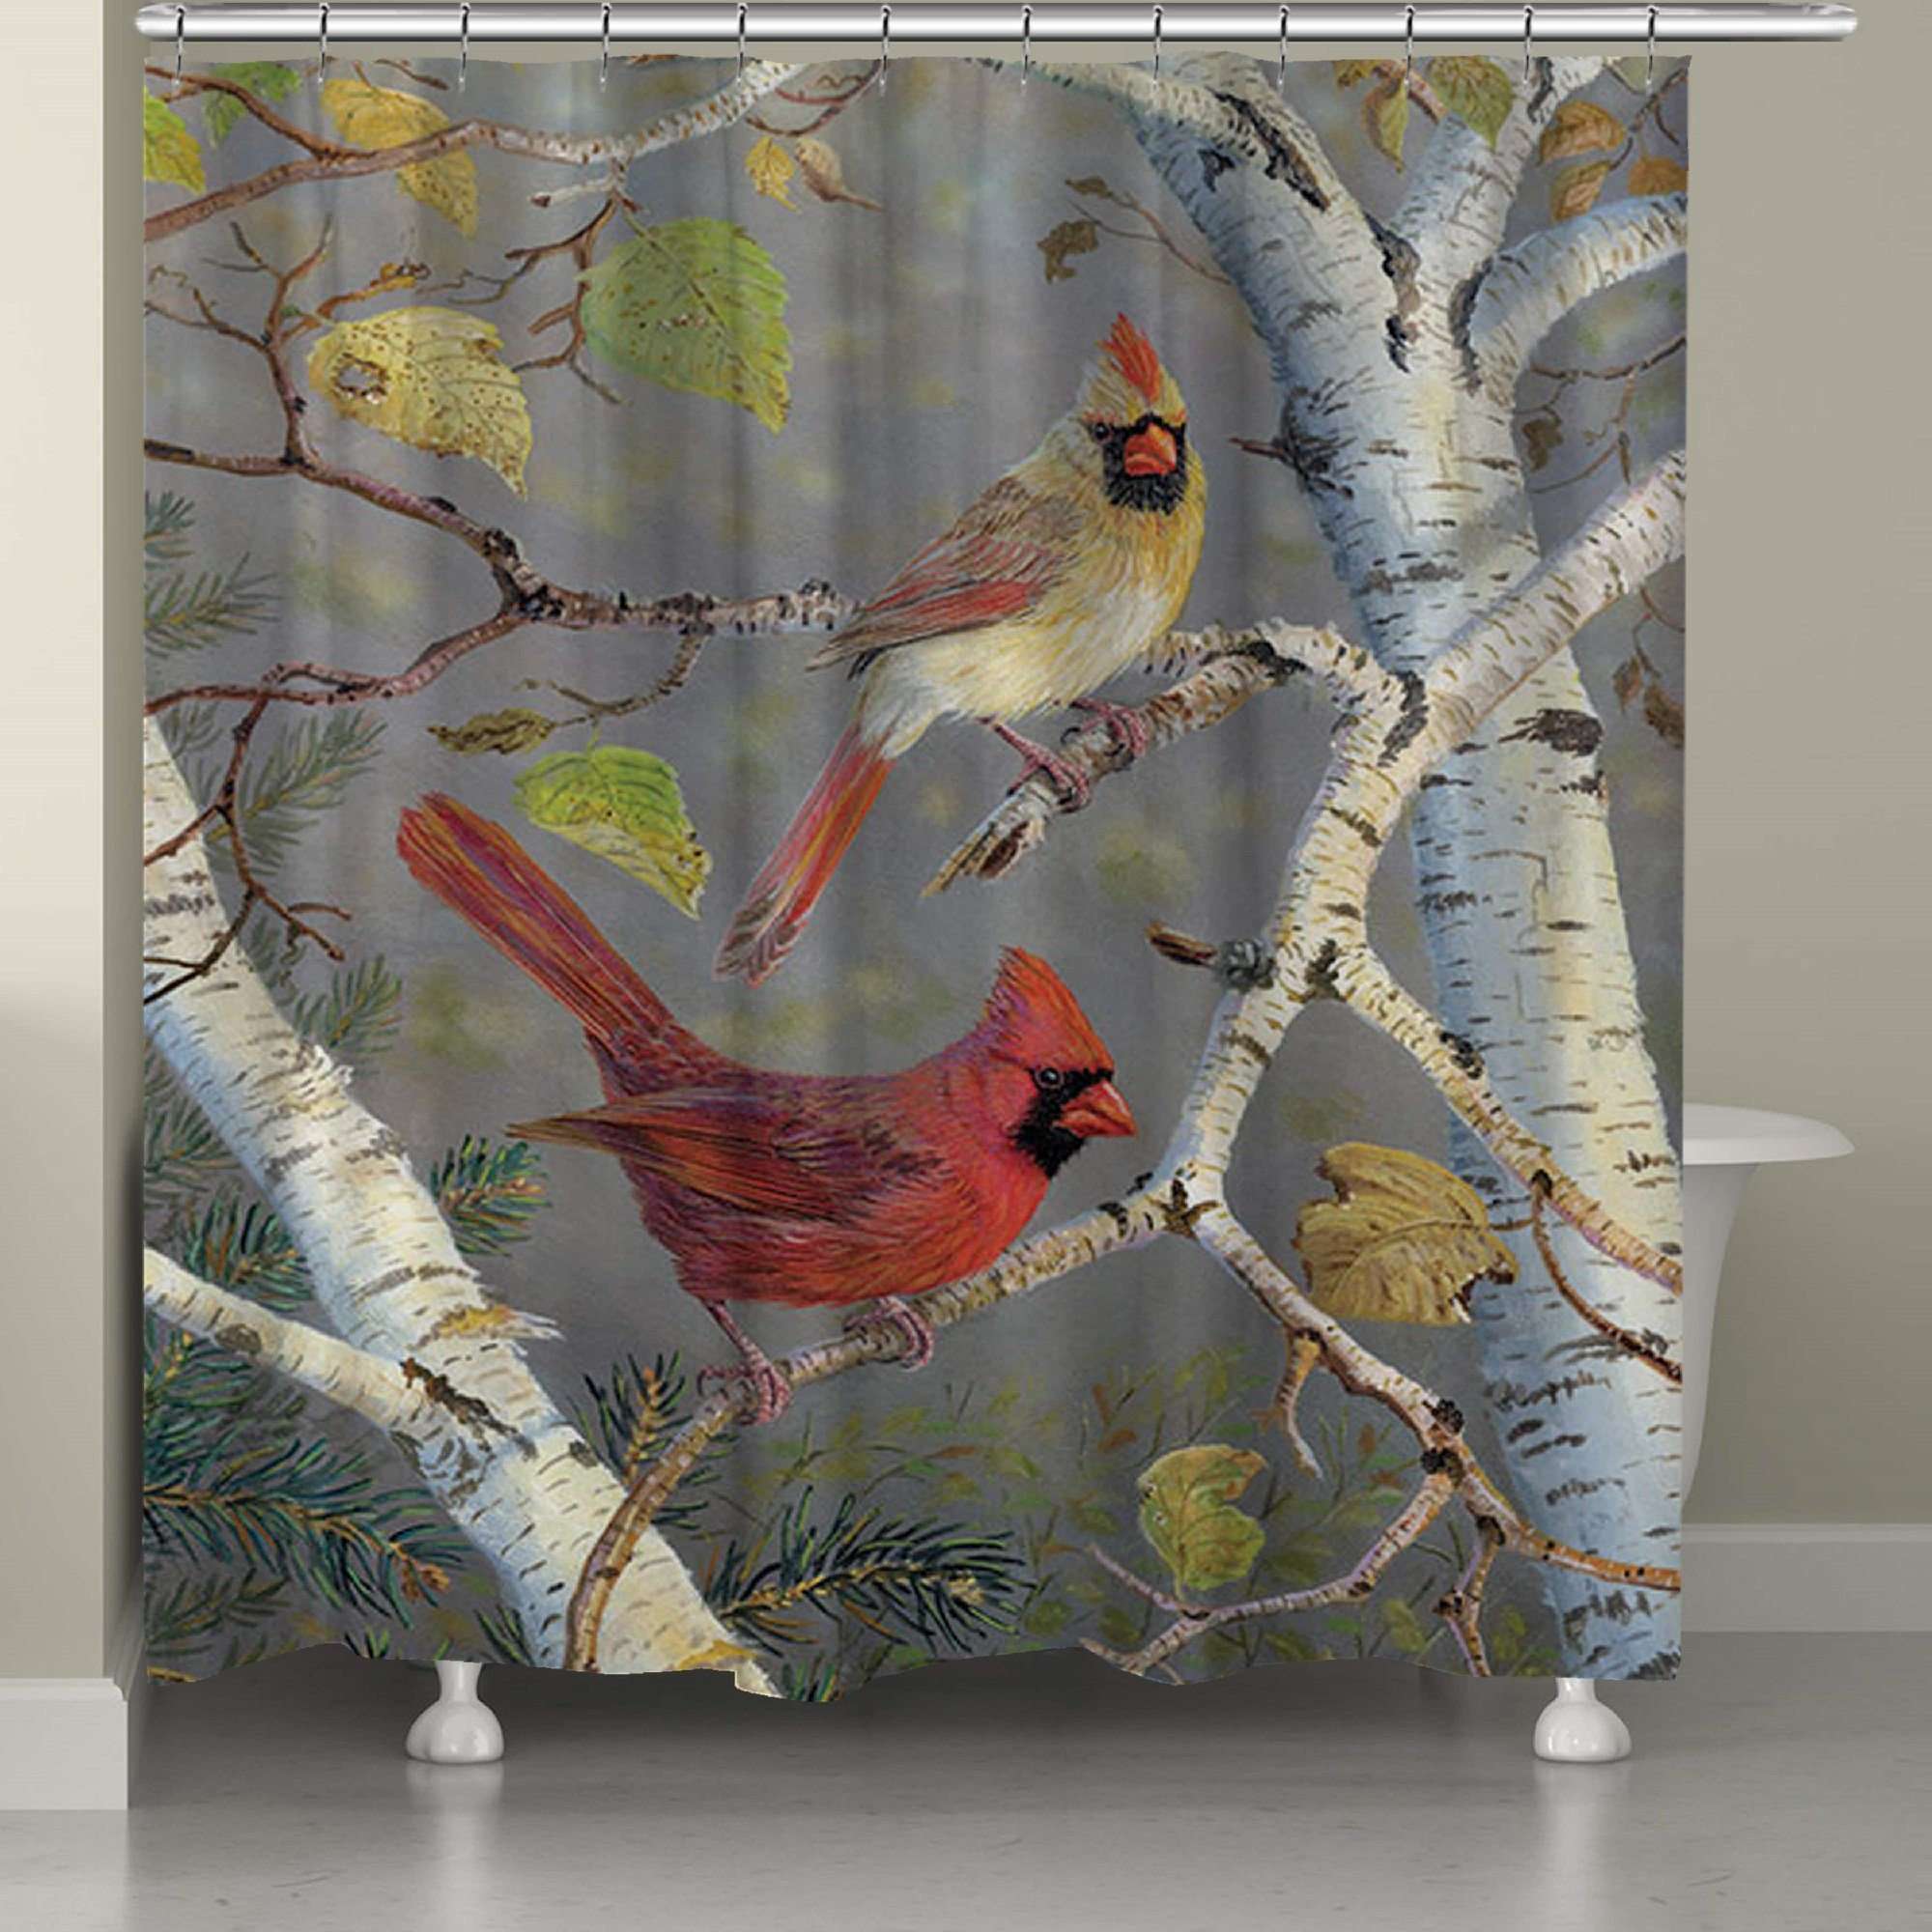 Birch Tree Cardinals Patterned, Vibrant Top Shower Curtain, Printed Exotic Forest Birds Trees Leafs Style, Premium Elegant Modern Home Decoration, Graphic Animal Lover Design, Grey, Red, Size 71 x 74